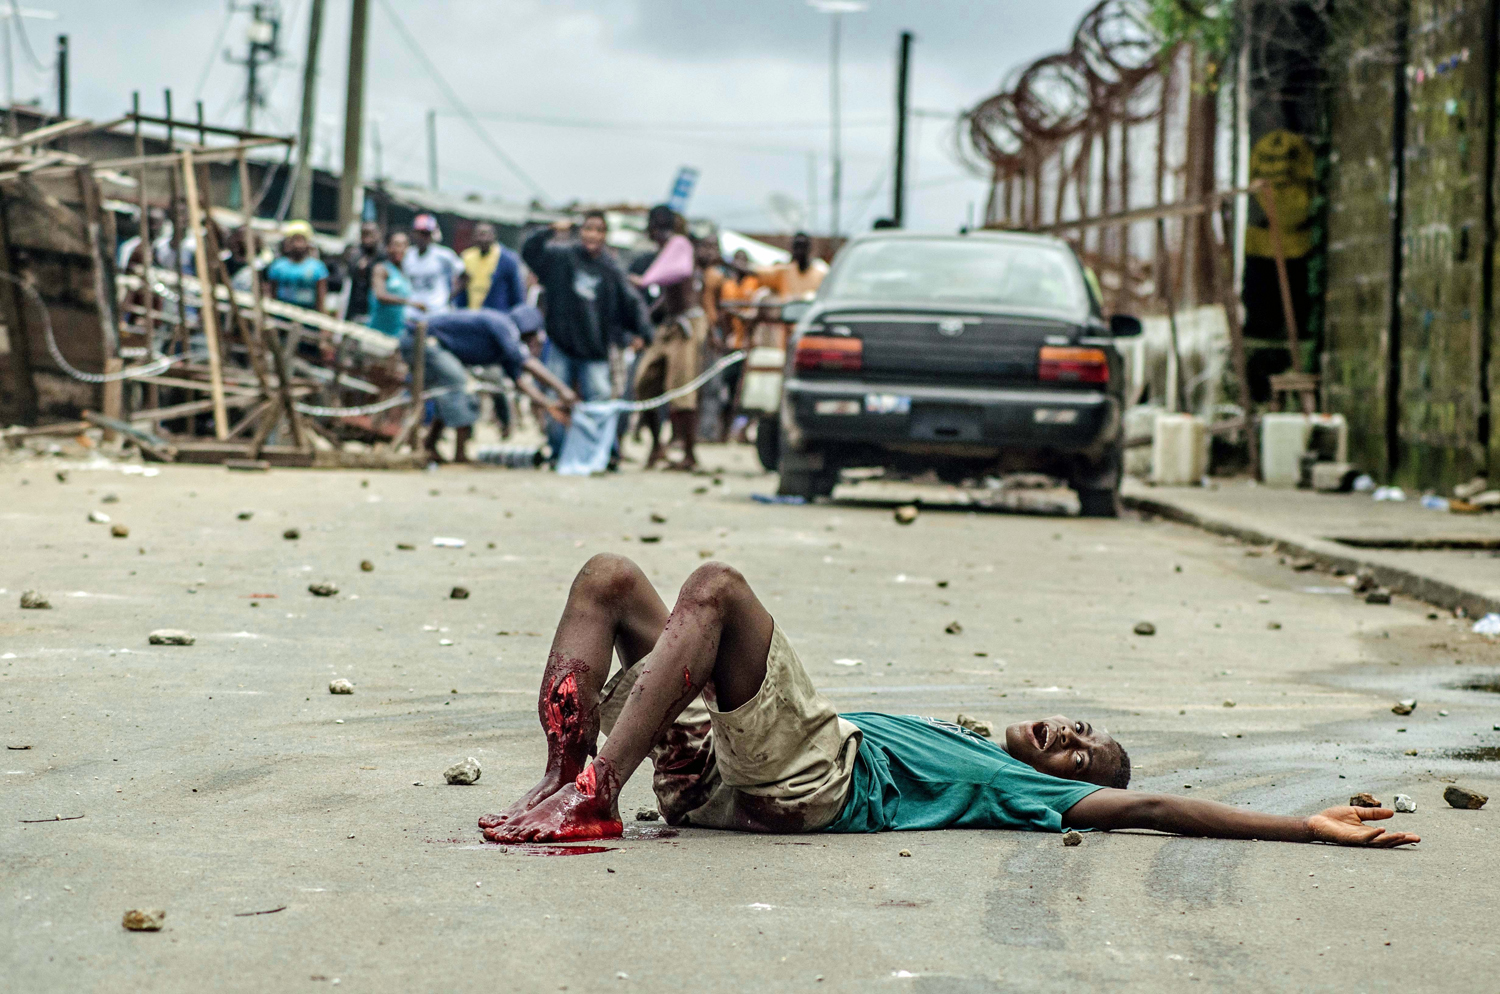 """<b>Tommy Trenchard, Aug. 20, 2014. Monrovia, Liberia.</b>                                                                      """"What's tragic about the case of 15-year-old Shackie Kamara is how needlessly he died. [He was shot in the legs during clashes with police]. Ebola didn't kill him, but the fear, panic and confusion it creates led to the circumstances in which he died. He is a symbol of what Ebola can do to a country or a community. The quarantine of West Point was heavily criticized and lifted shortly afterwards. It achieved little, and Ebola remains rife throughout the city. It is also telling that he died of a treatable wound. After health staff started getting ill and hospitals became seen as sites of infection, the whole health system collapsed. If you get sick or injured in Monrovia, there is simply nowhere to go."""""""